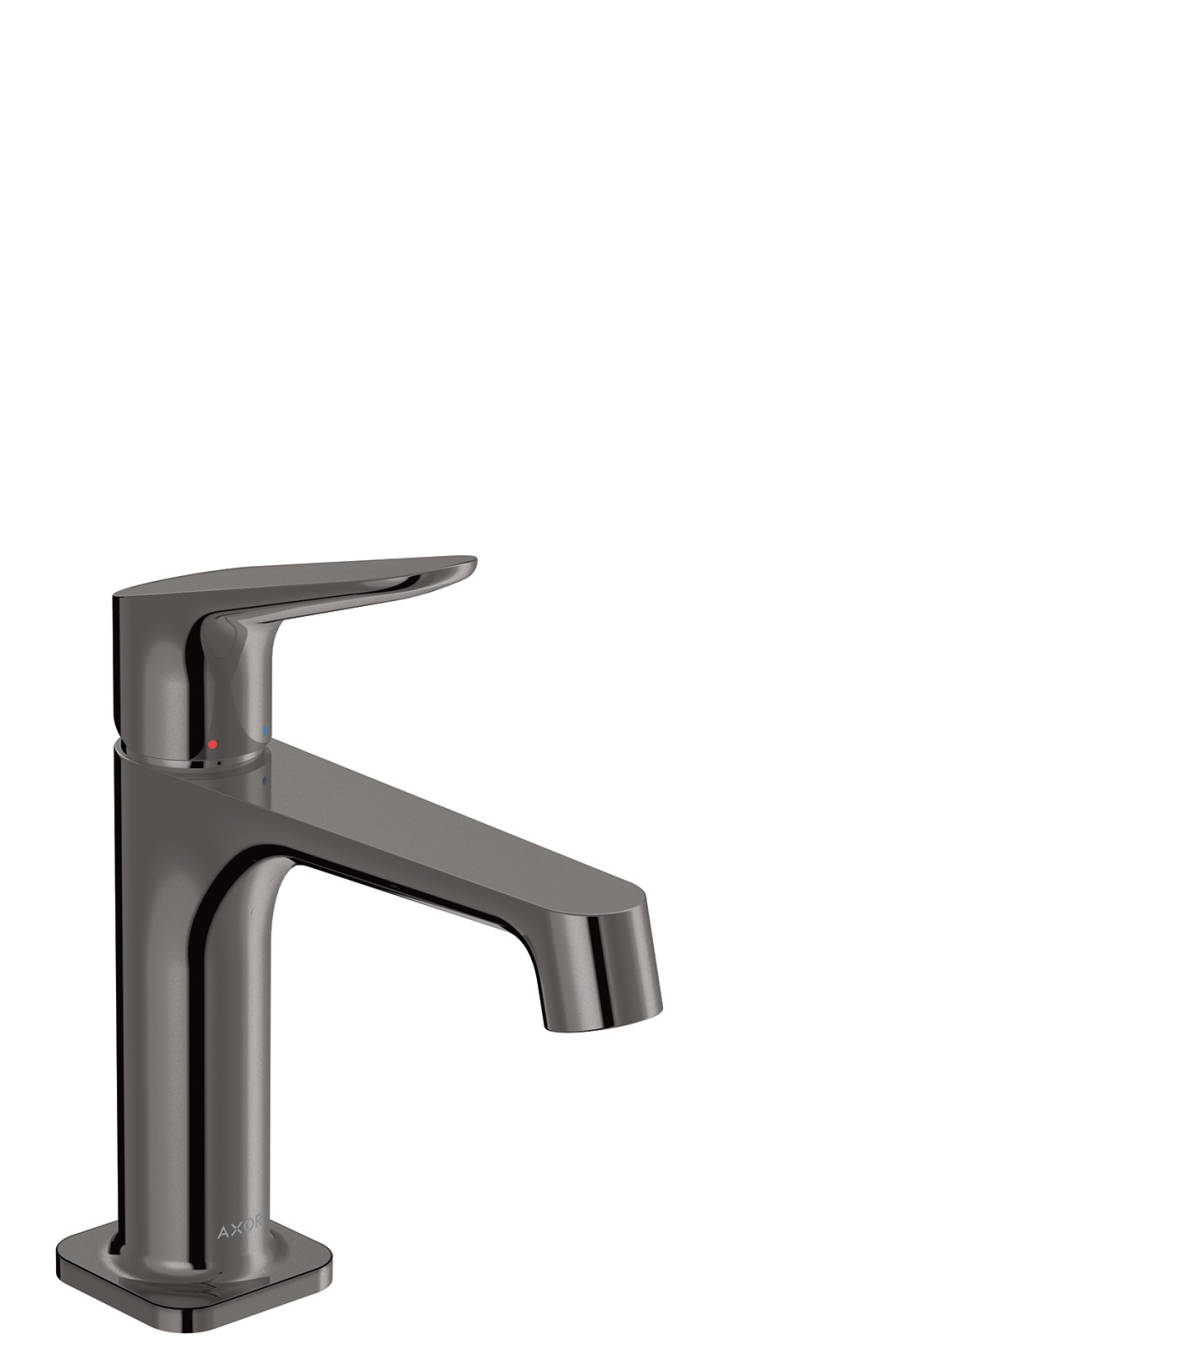 Single lever basin mixer 100 with waste set, Polished Black Chrome, 34017330